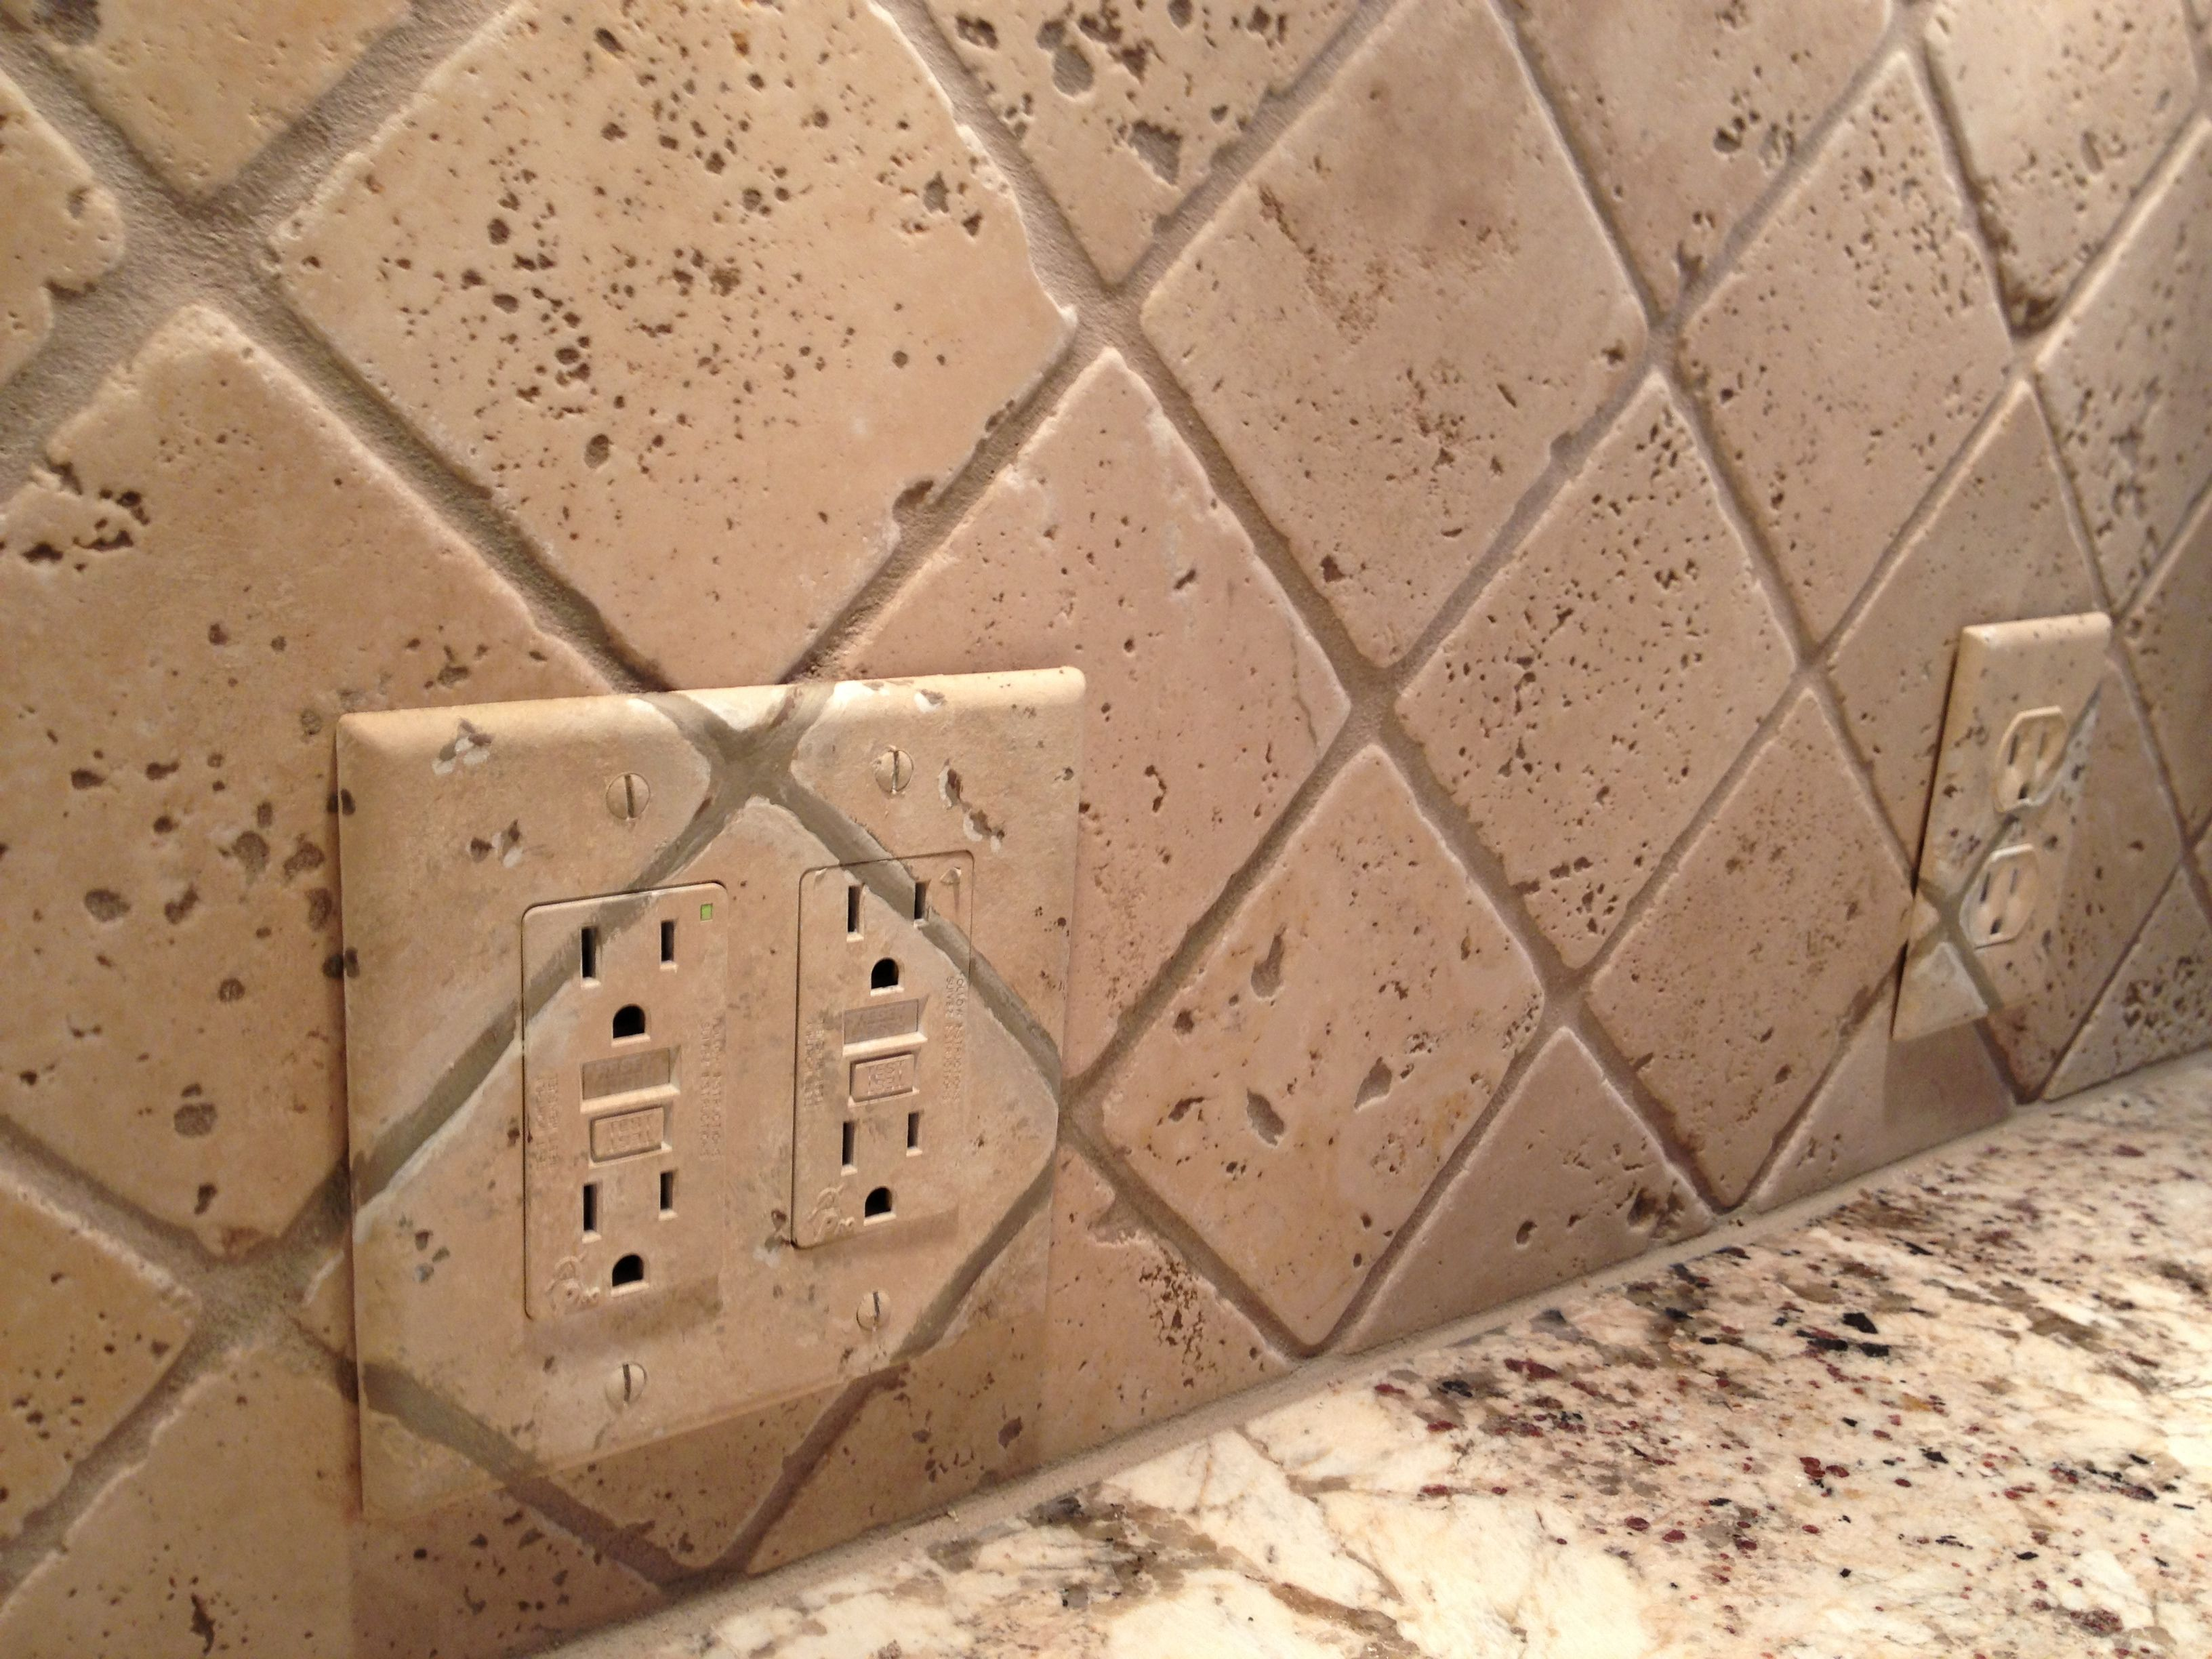 - More Disappearing Outlet Covers By Jen Brooks - There Match